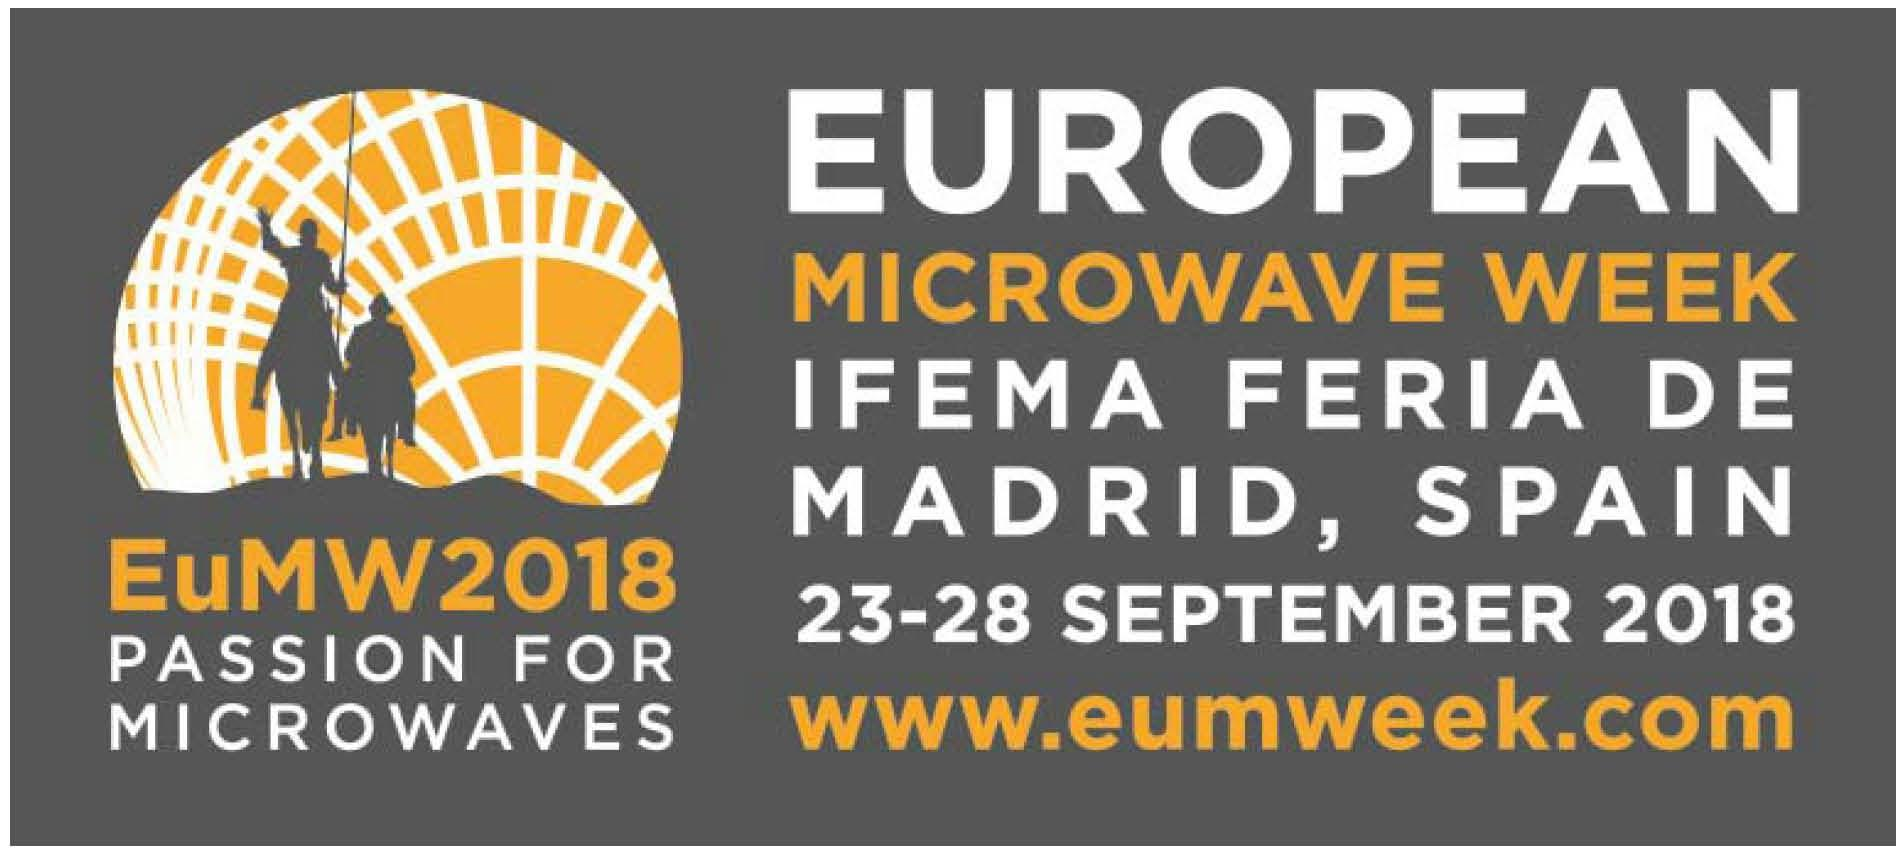 proimages/news/2018_eumw/2018-eumw-madrid.jpg